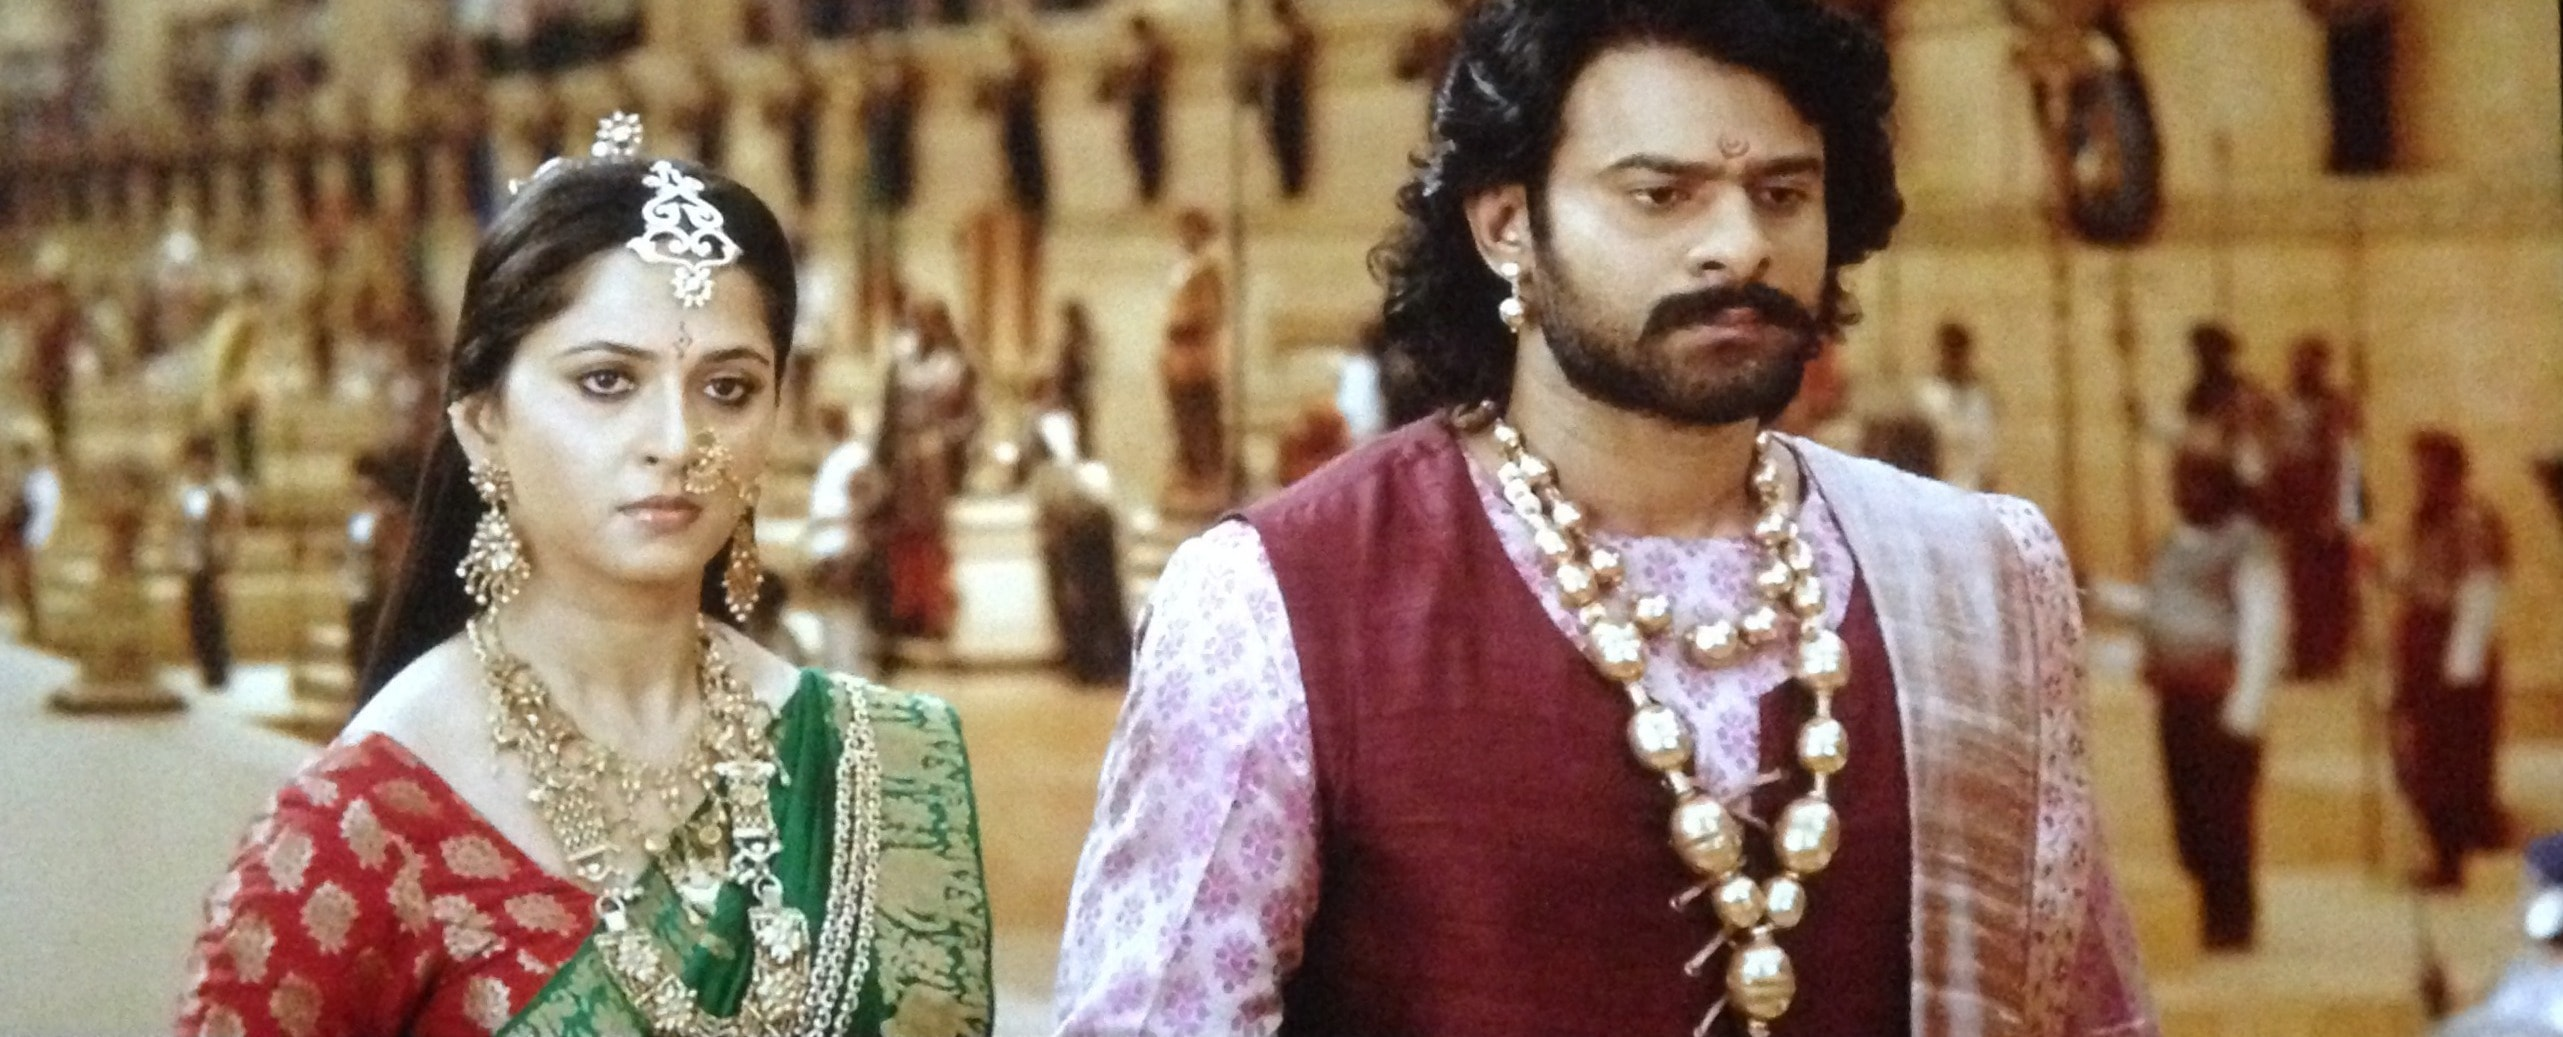 Anushka and Prabhas in Bahubali 2